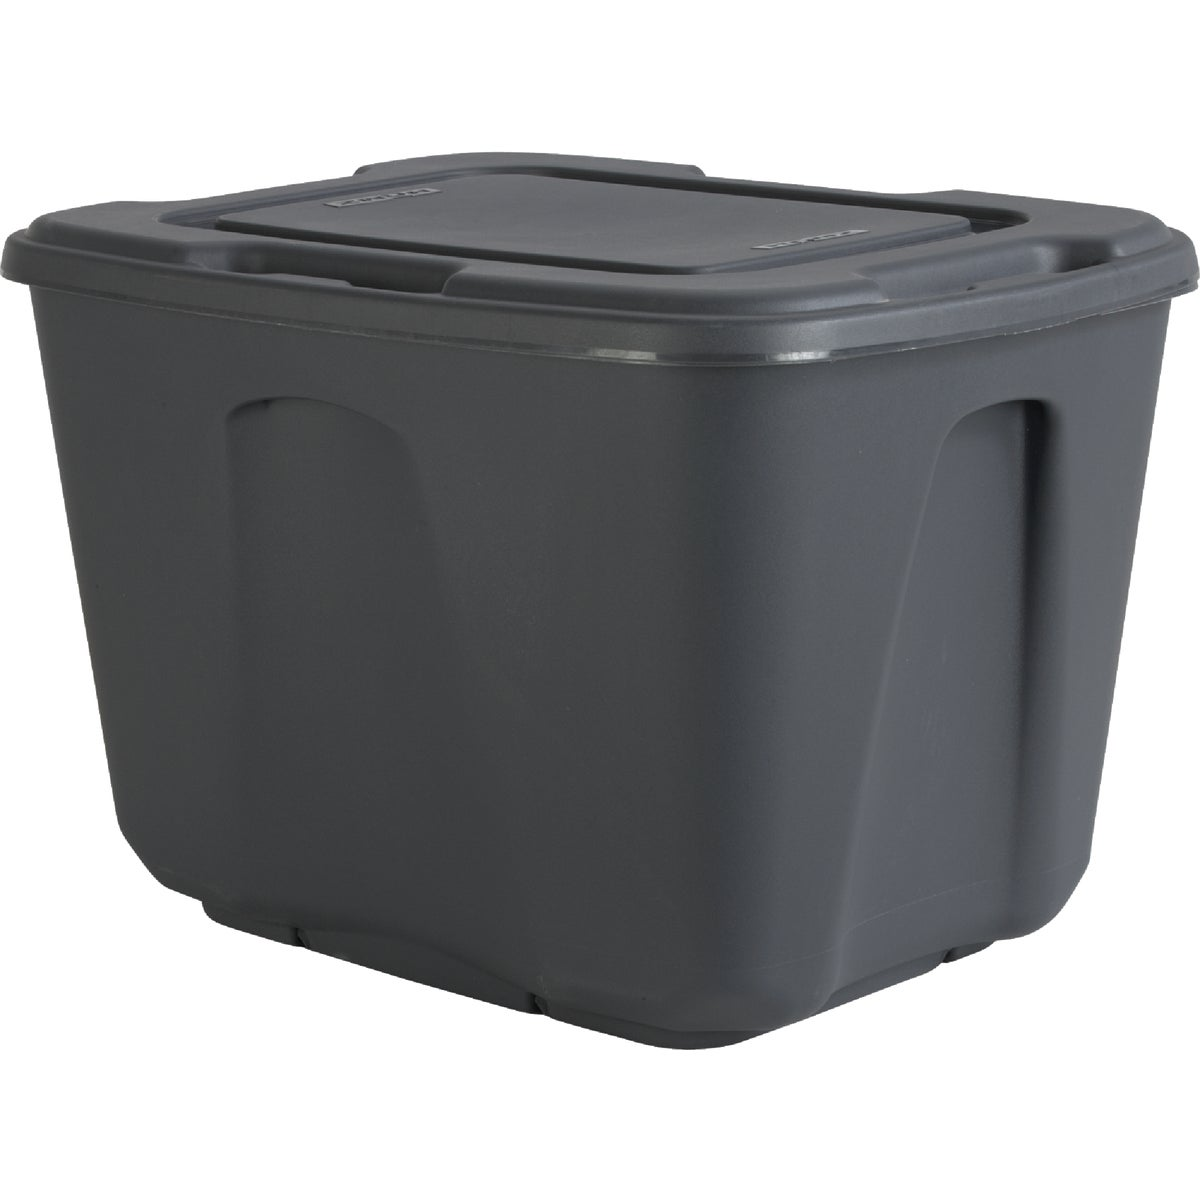 18 GALLON TOTE BOX